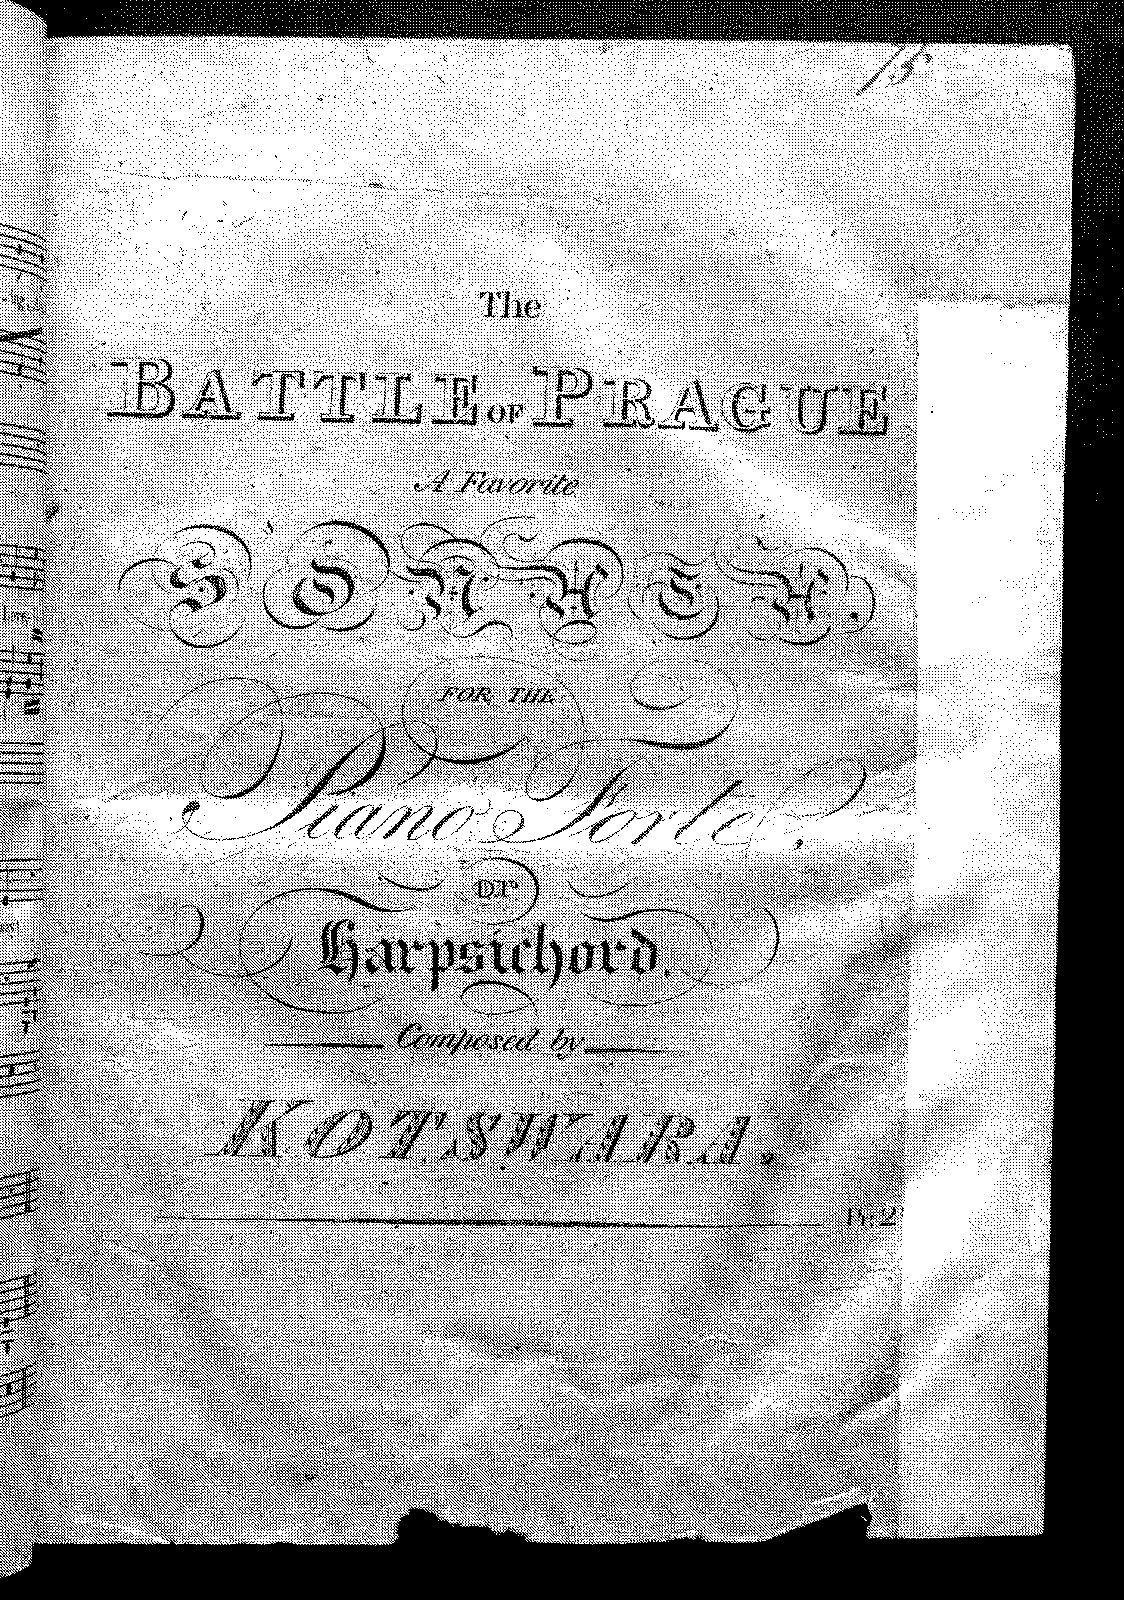 PMLP168797-koczwara battle of prague hartley00535544.pdf